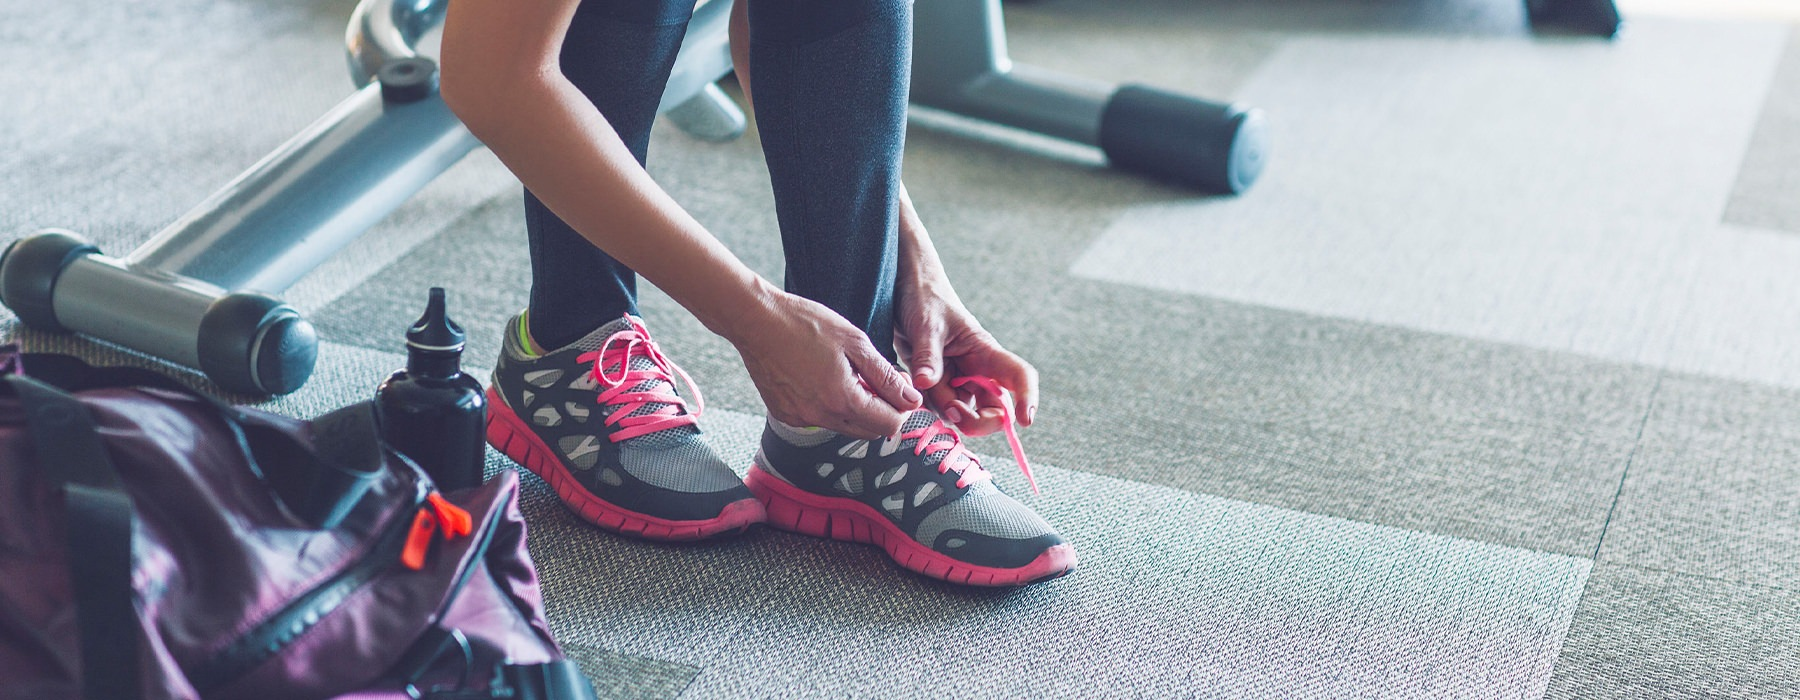 Woman putting on her tennis shoes in the fitness center